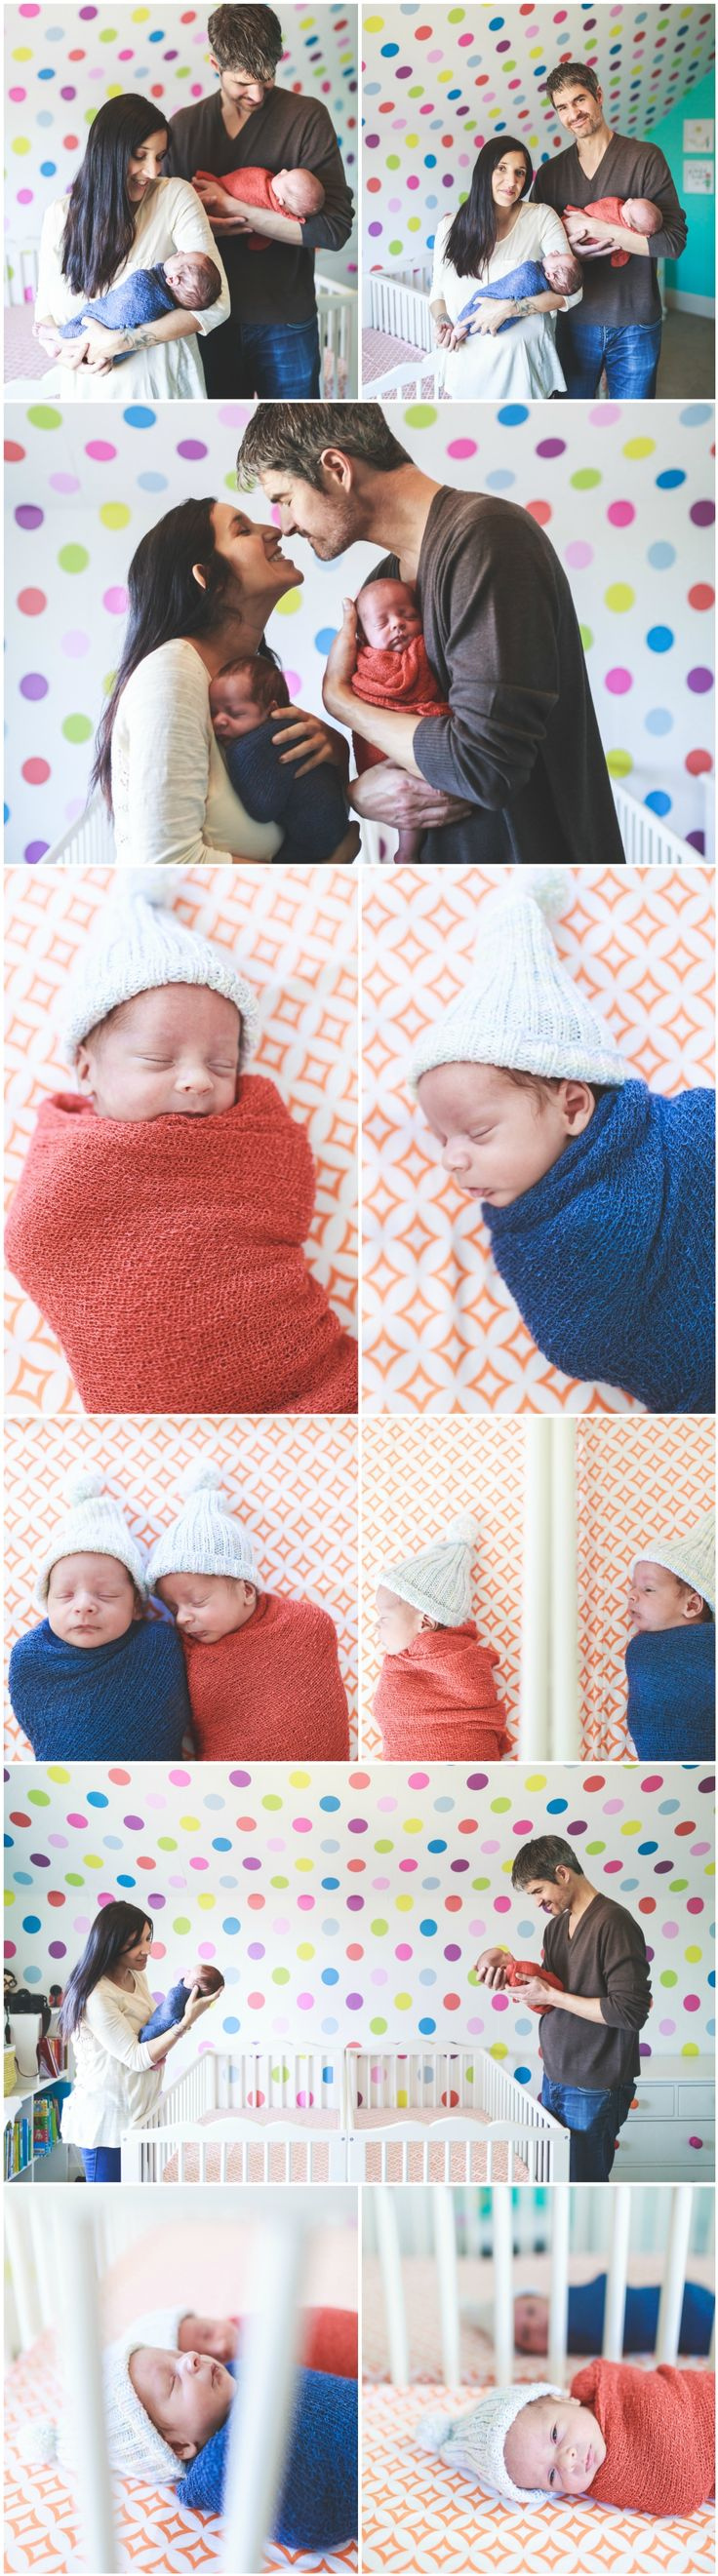 Cute Twin Newborn Photography Ideas and Inspiration   Newborn Poses   Denver Newborn Photographers   Newborn Baby Twins and Family Portraits